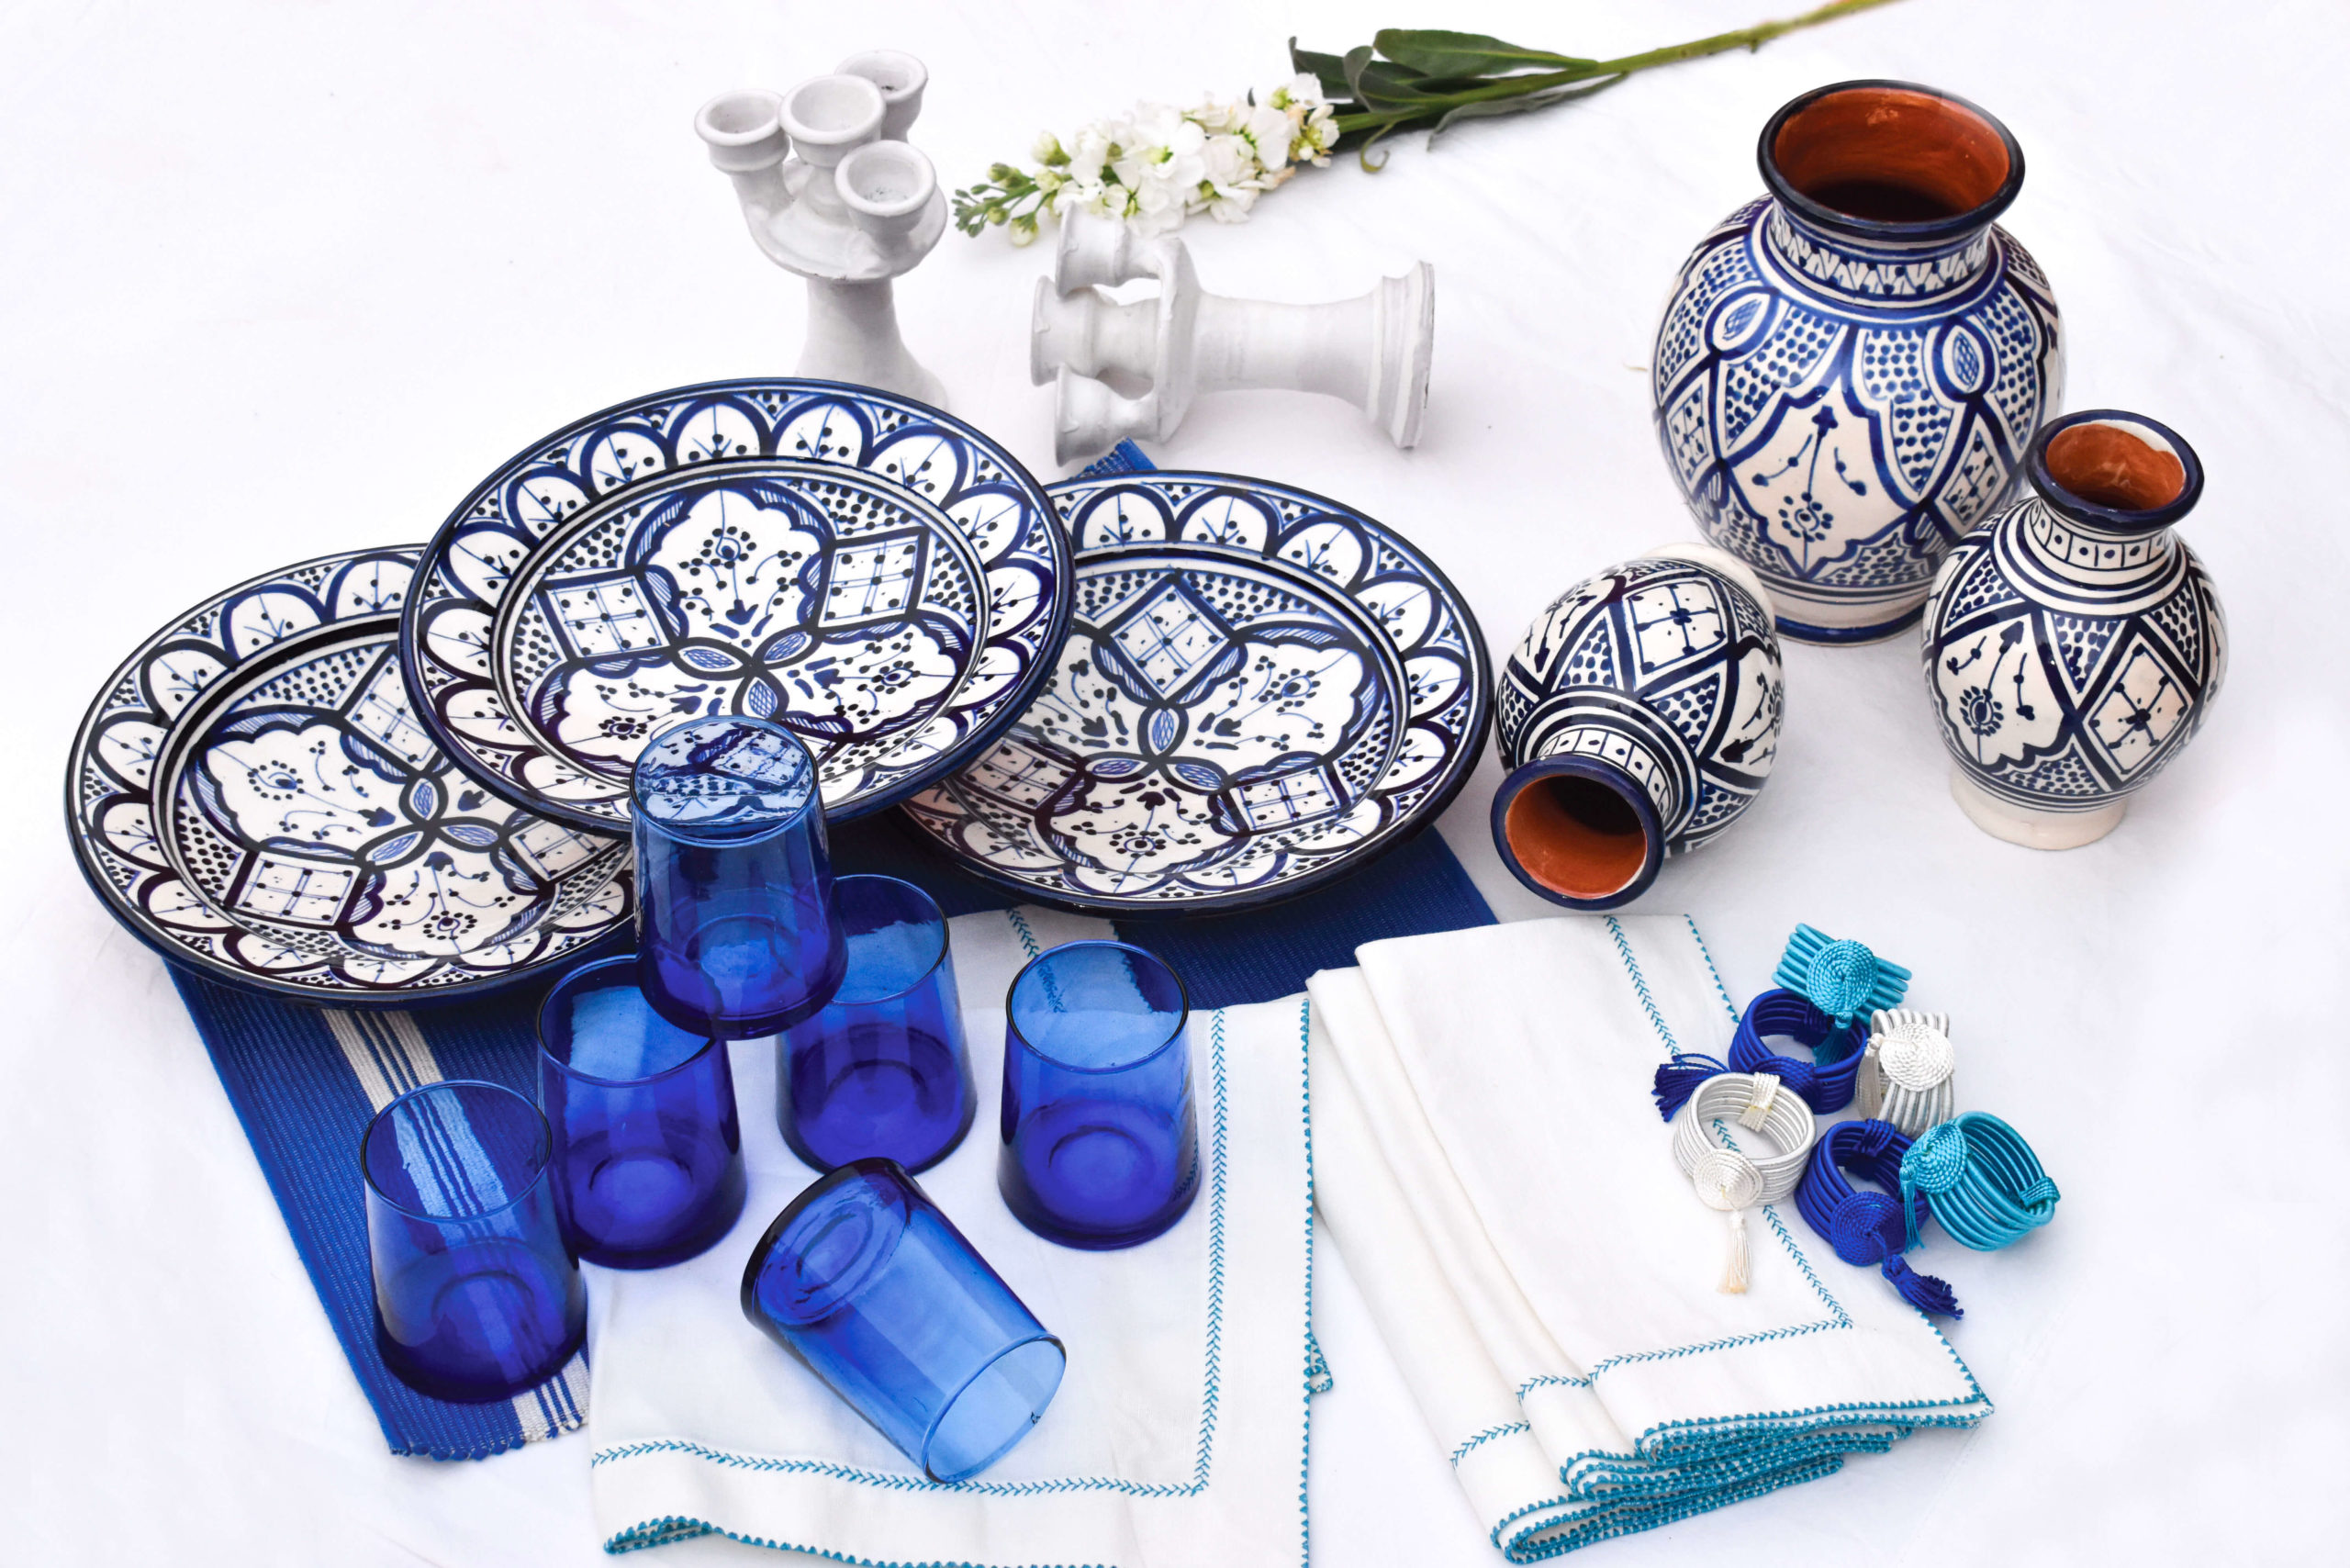 Handmade blue and white table setting dinnerware package view